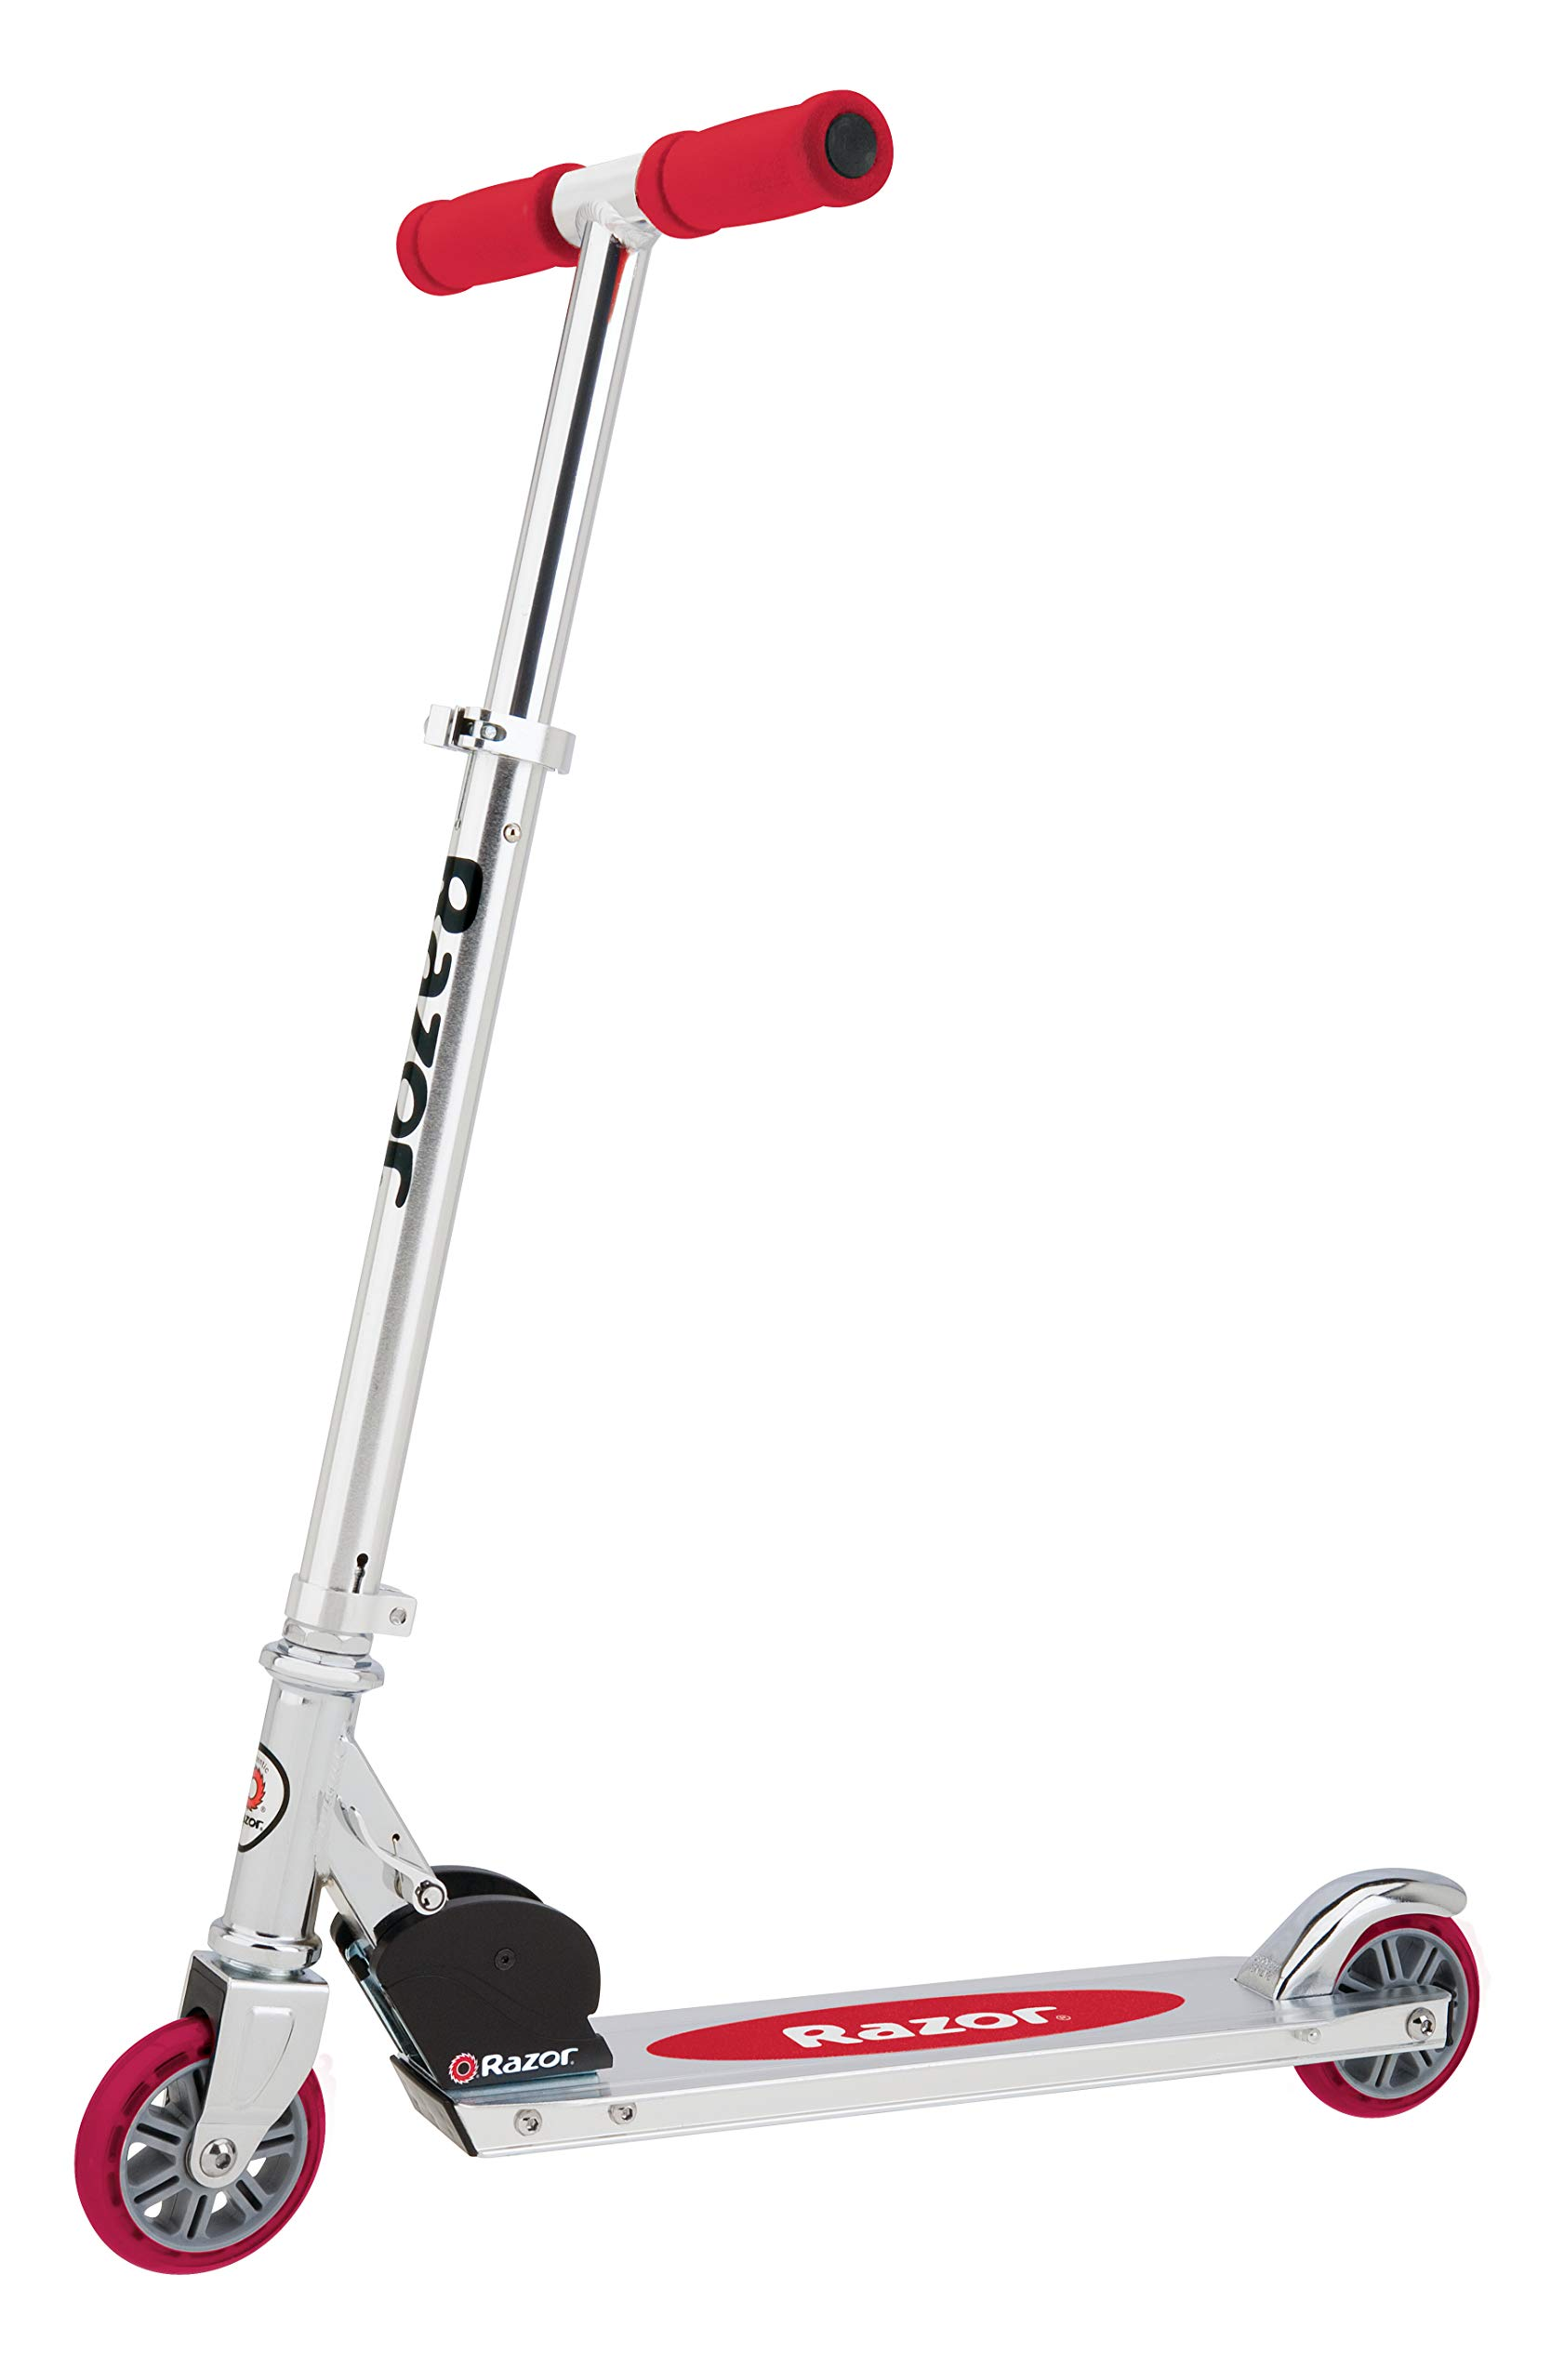 Razor A Kick Scooter for Kids - Lightweight, Foldable, Aluminum Frame, and Adjustable Handlebars